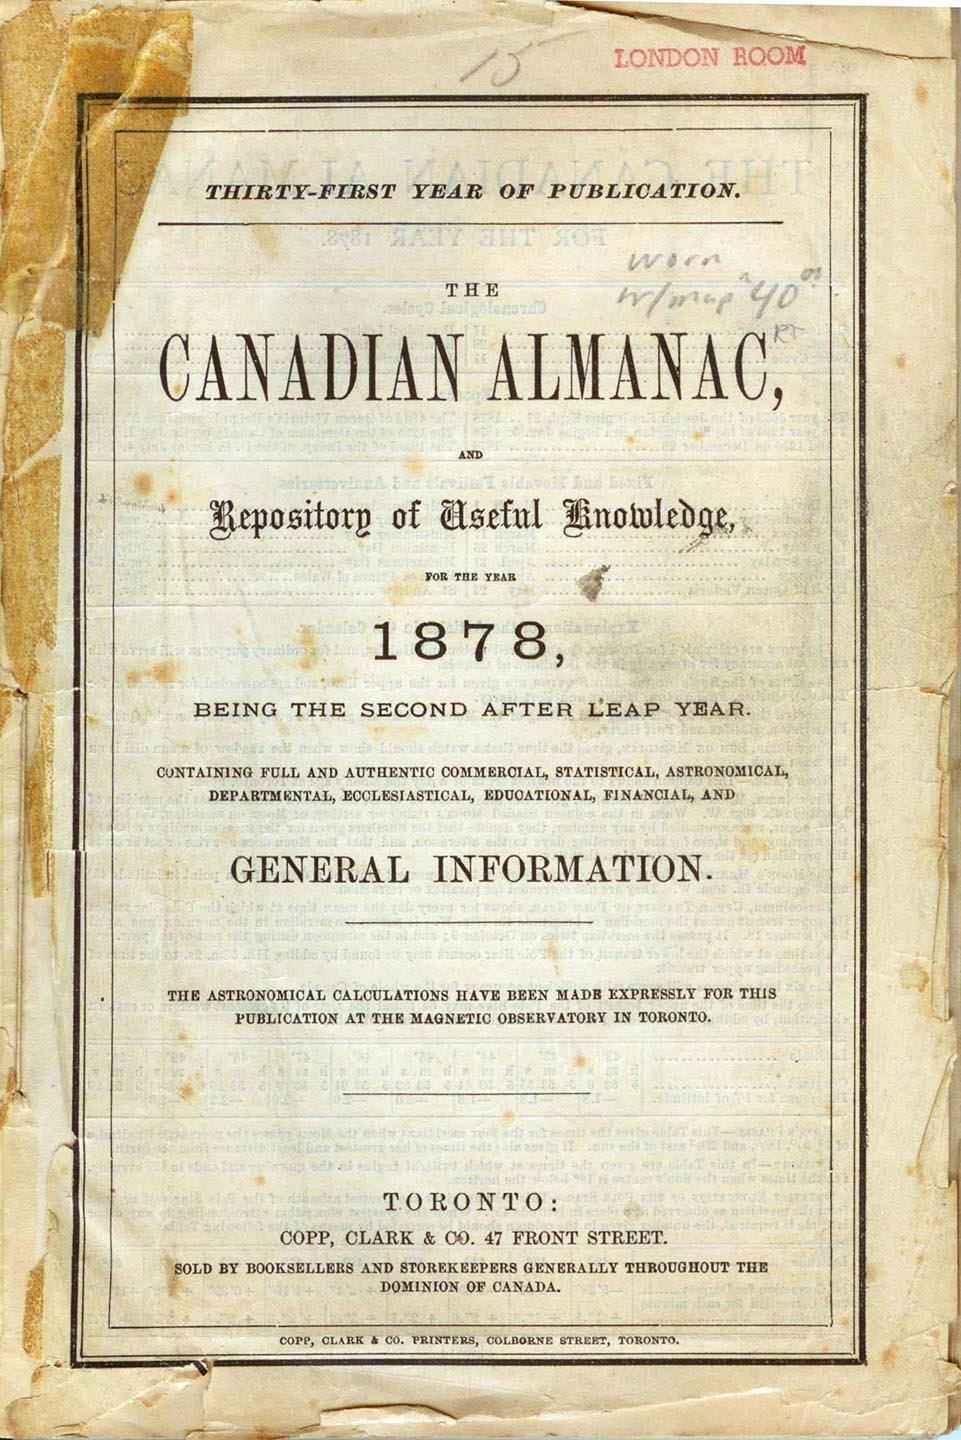 The Canadian Almanac, and Repository of Useful Knowledge for the Year 1878